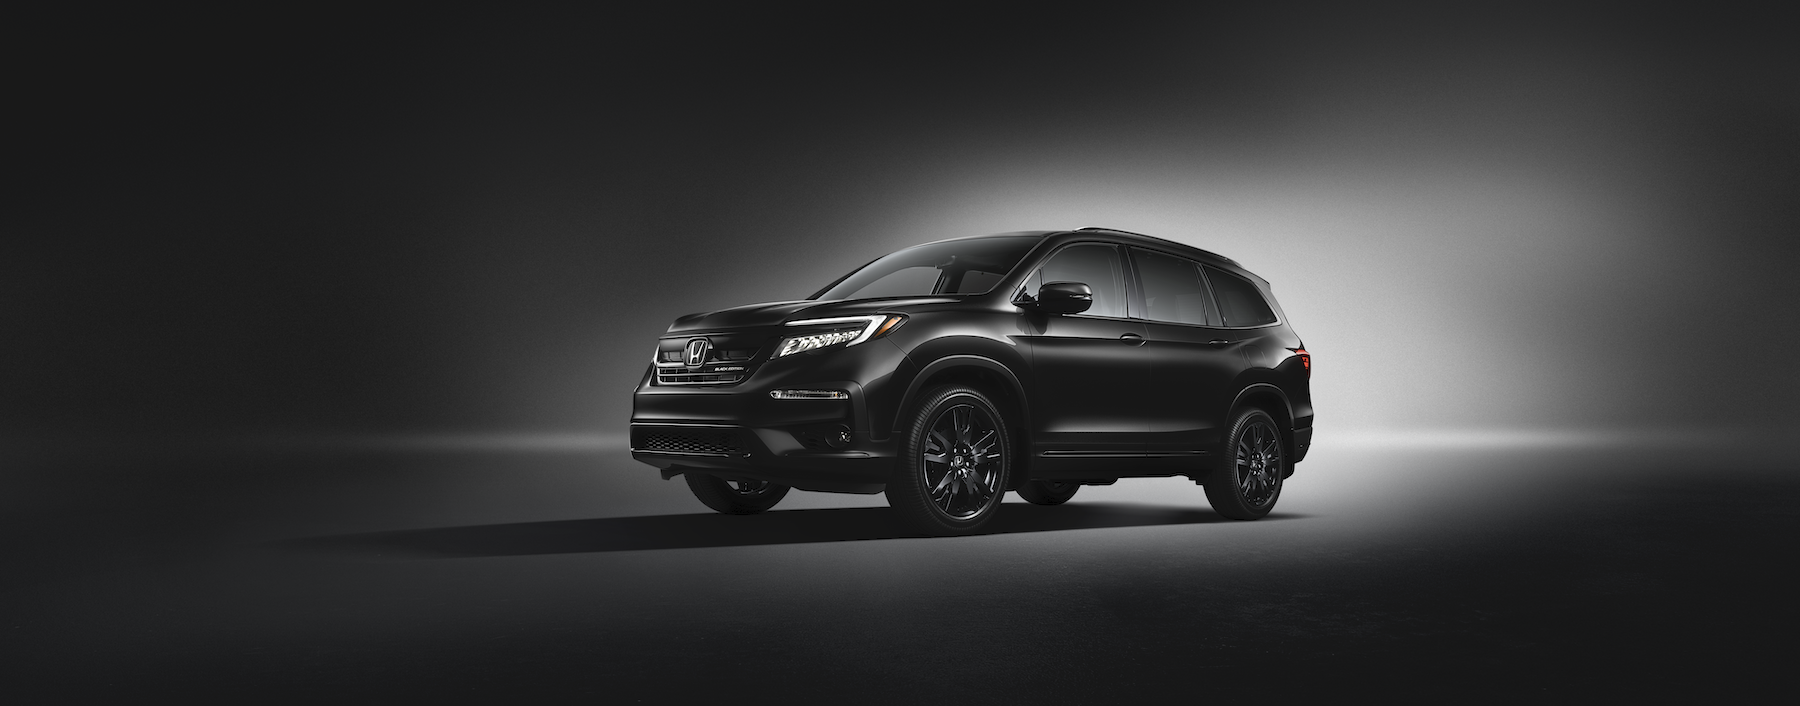 Model Features of the 2020 Honda Pilot at Jim Coleman in Maryland | Black 2020 honda pilot on a black background